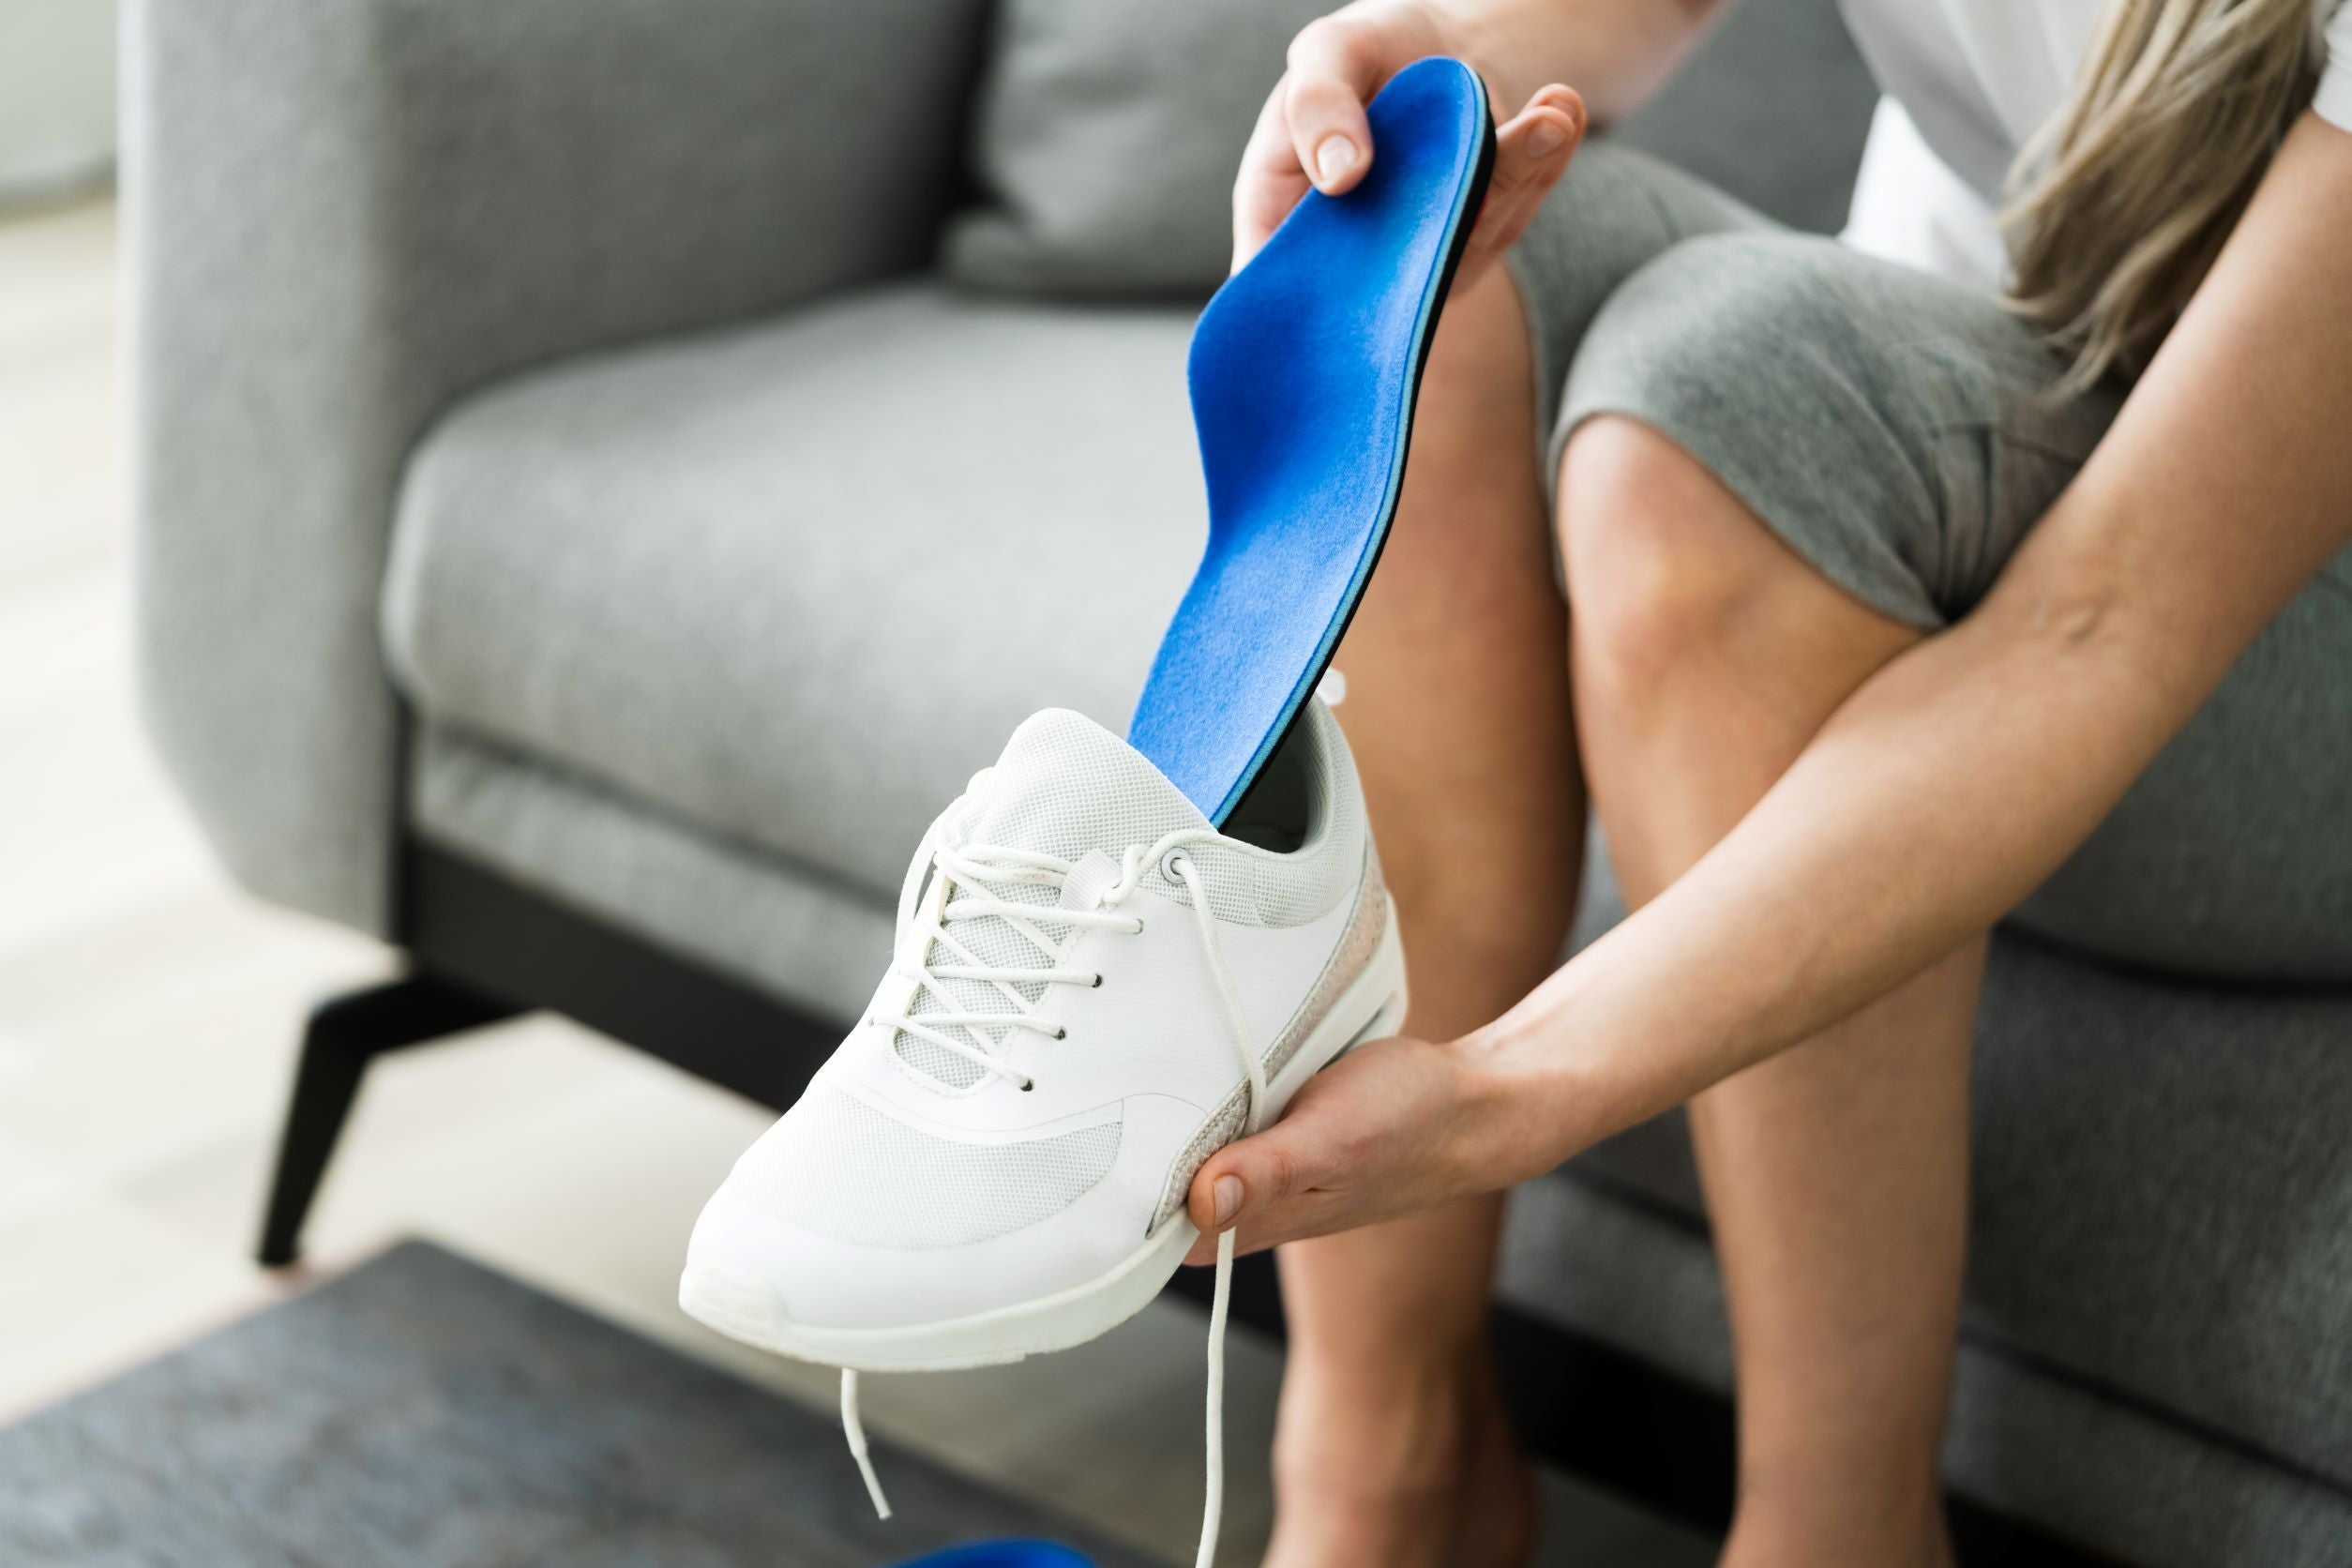 putting insole in shoe